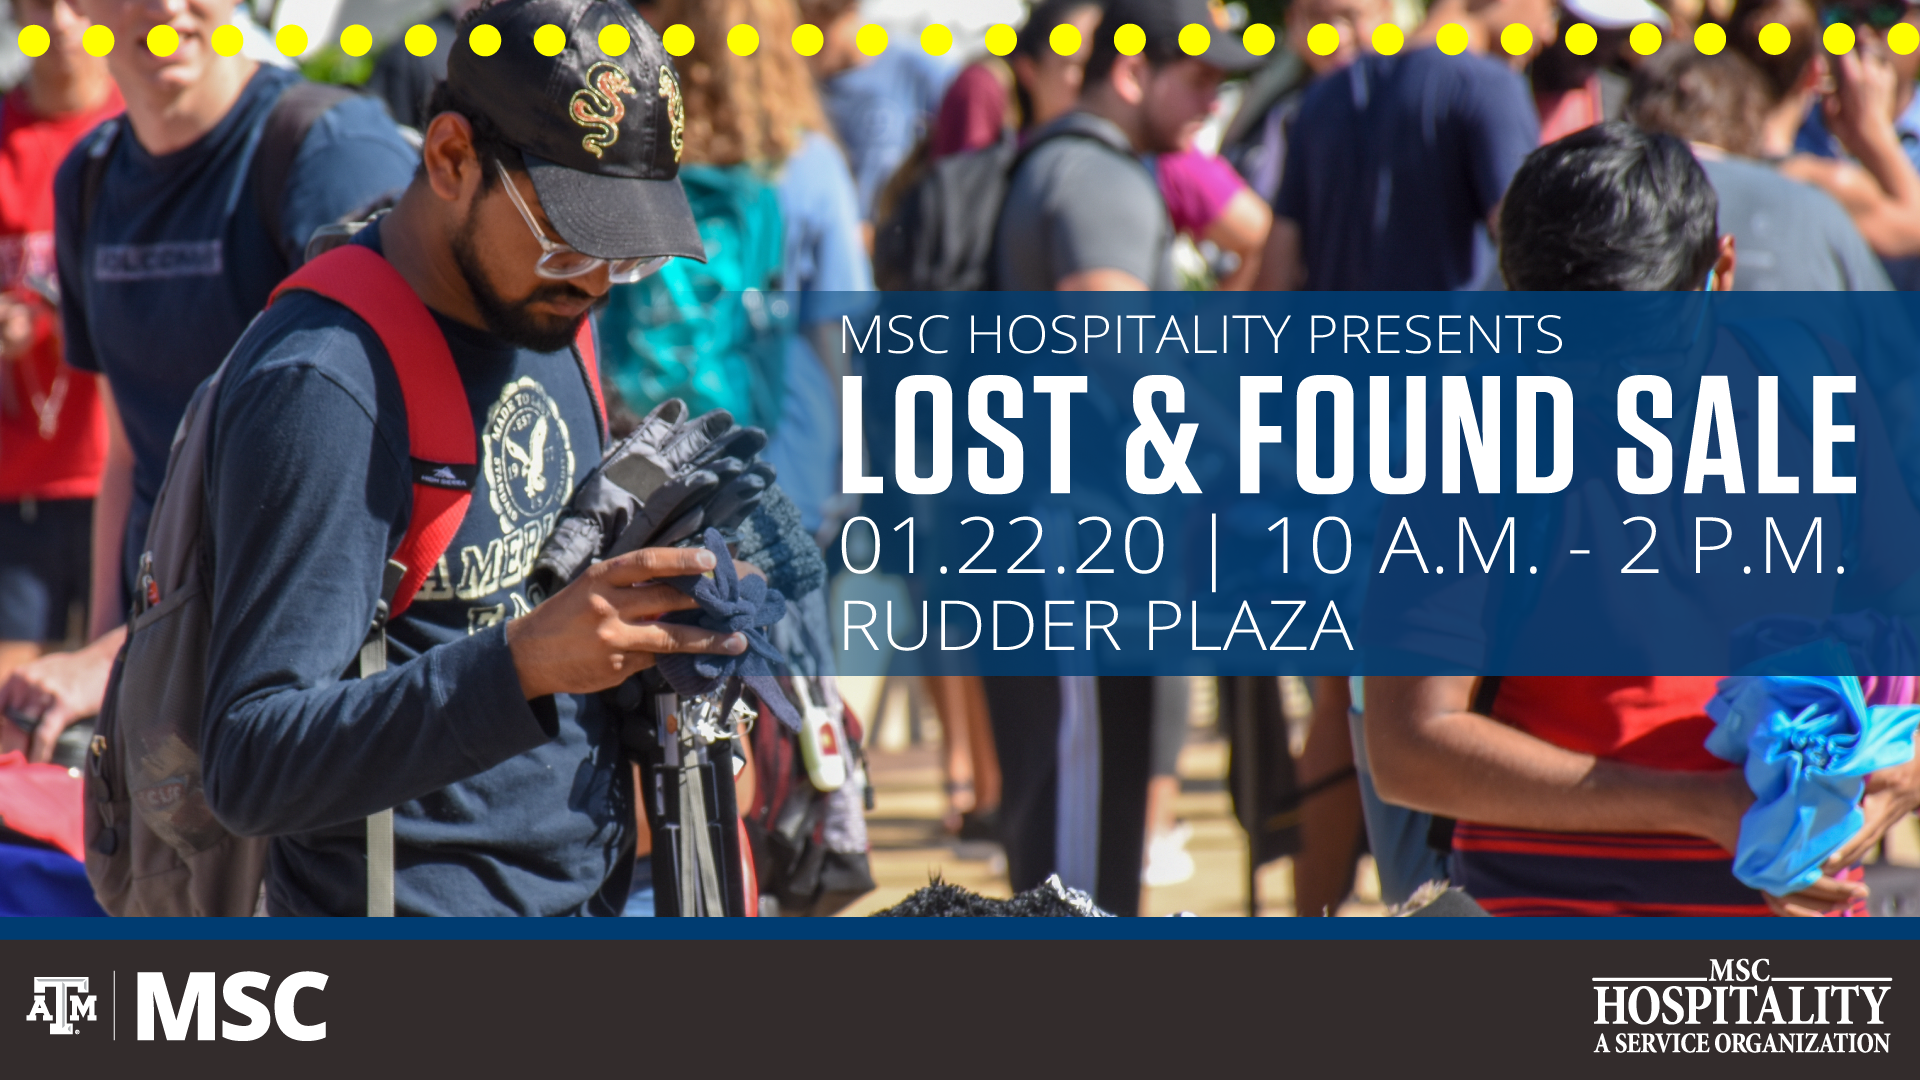 Lost a& Found Sale, January 22, 2020, Rudder Plaza, 10 a.m. to 2 p.m.